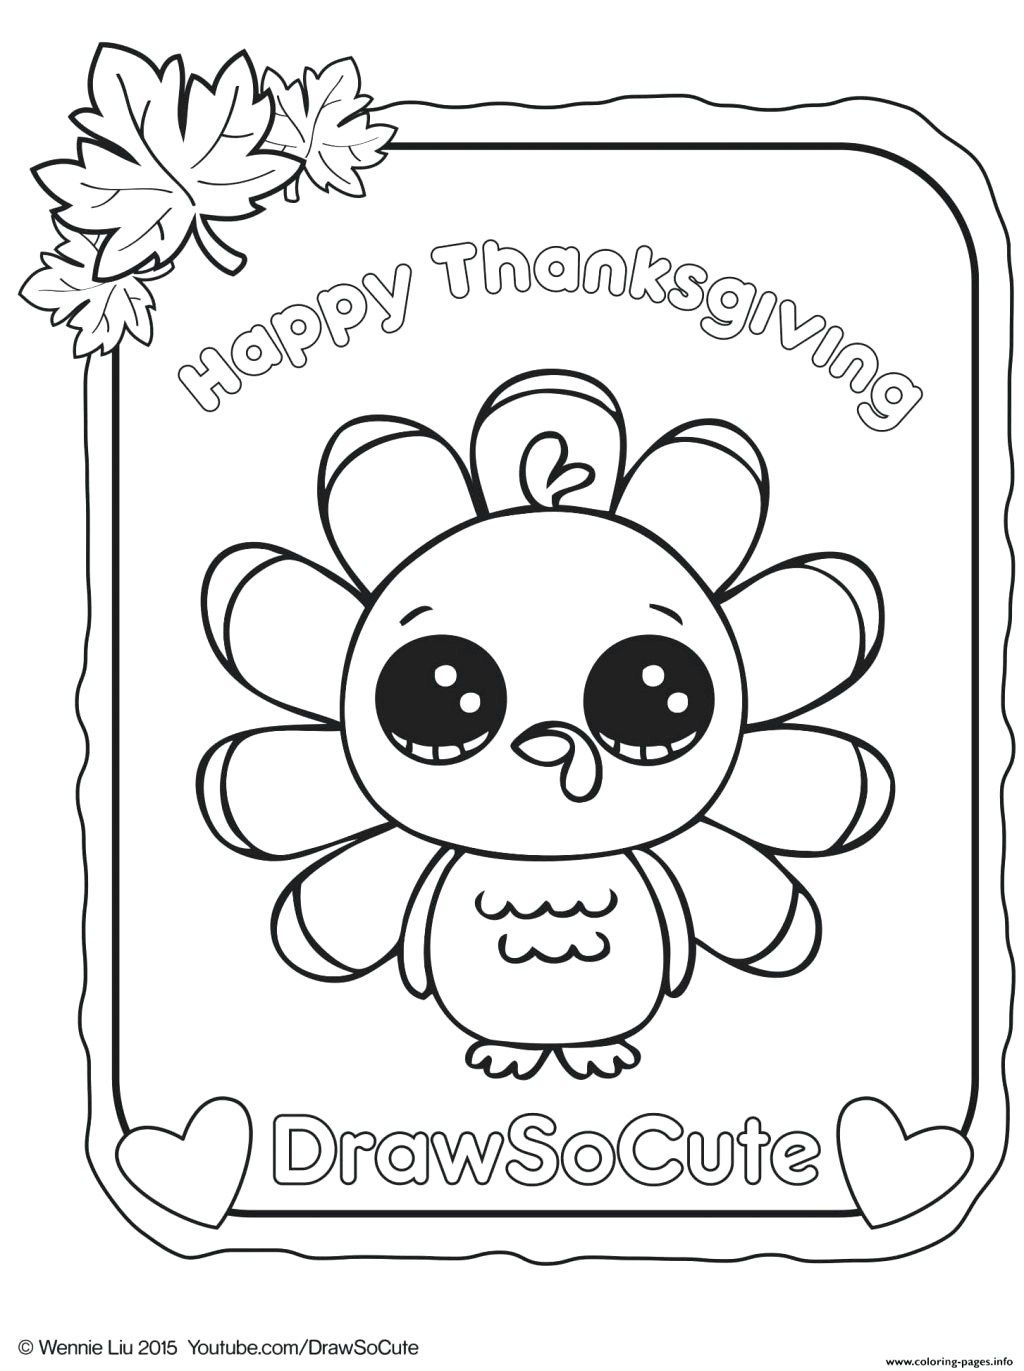 24 Marvelous Photo Of Turkey Coloring Pages Printable Davemelillo Com Thanksgiving Coloring Pages Turkey Coloring Pages Cute Coloring Pages